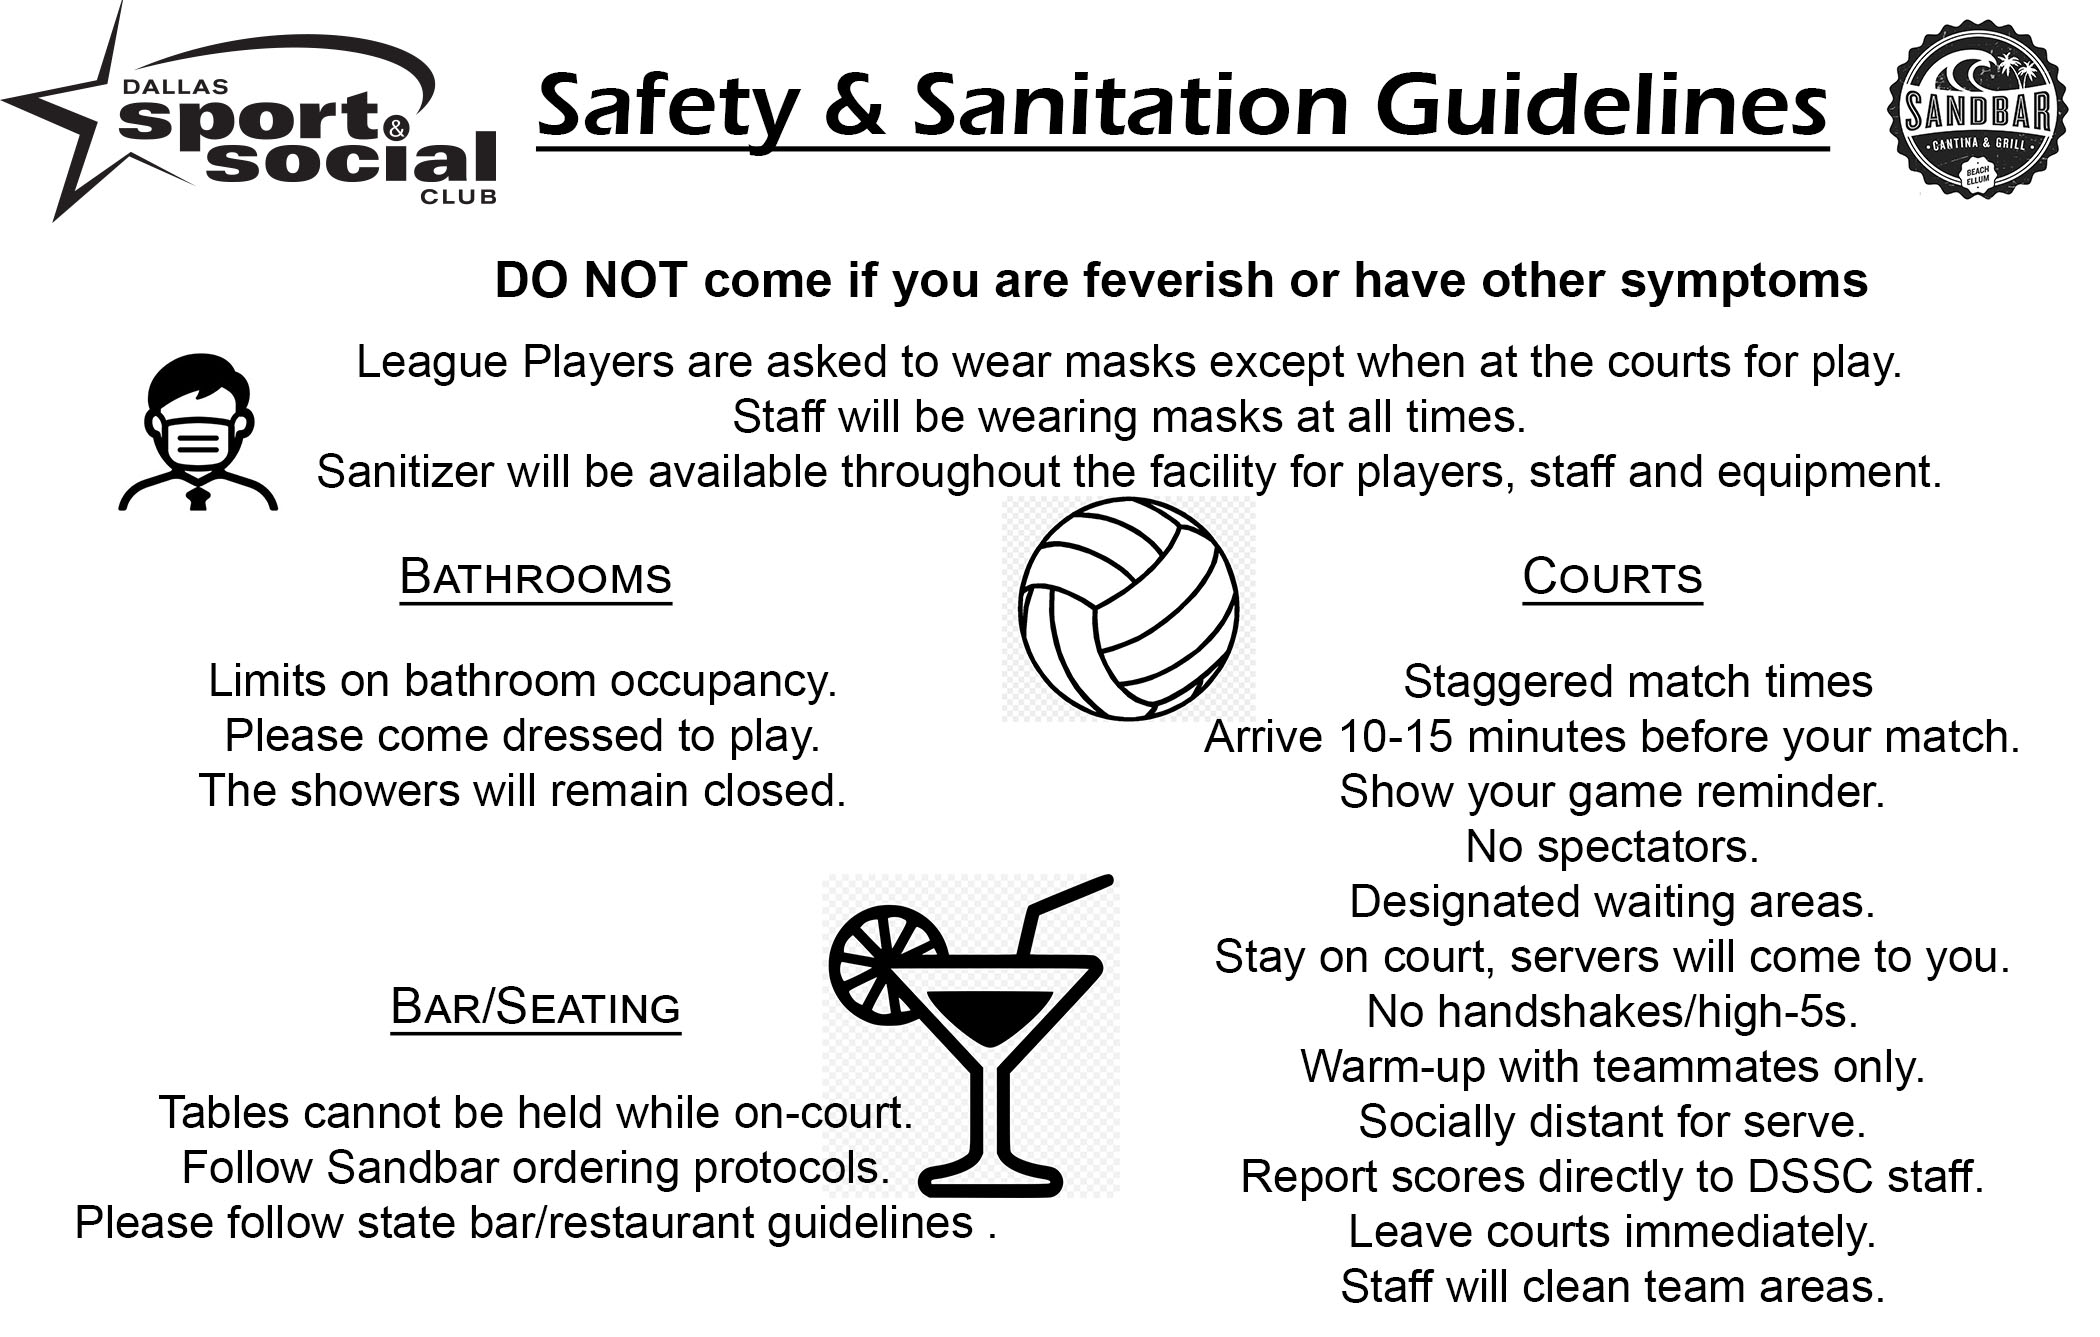 Pandemic-related safety guidelines